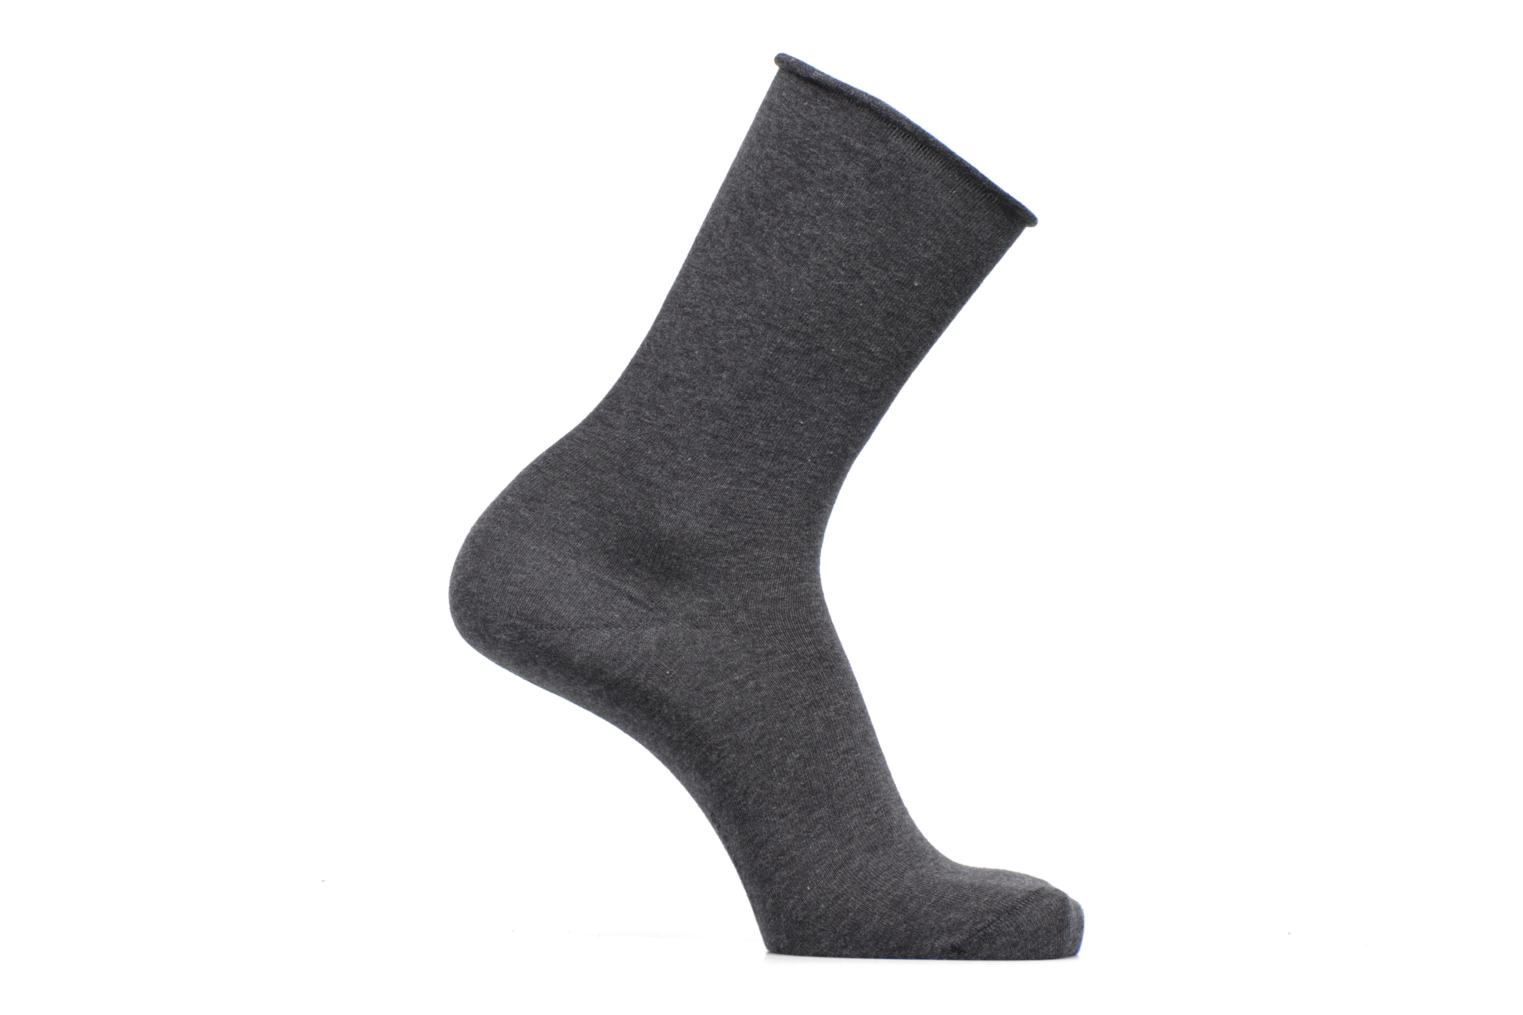 Chaussettes Veloutées ANTHRACITE/CHARCOAL GREY T8H